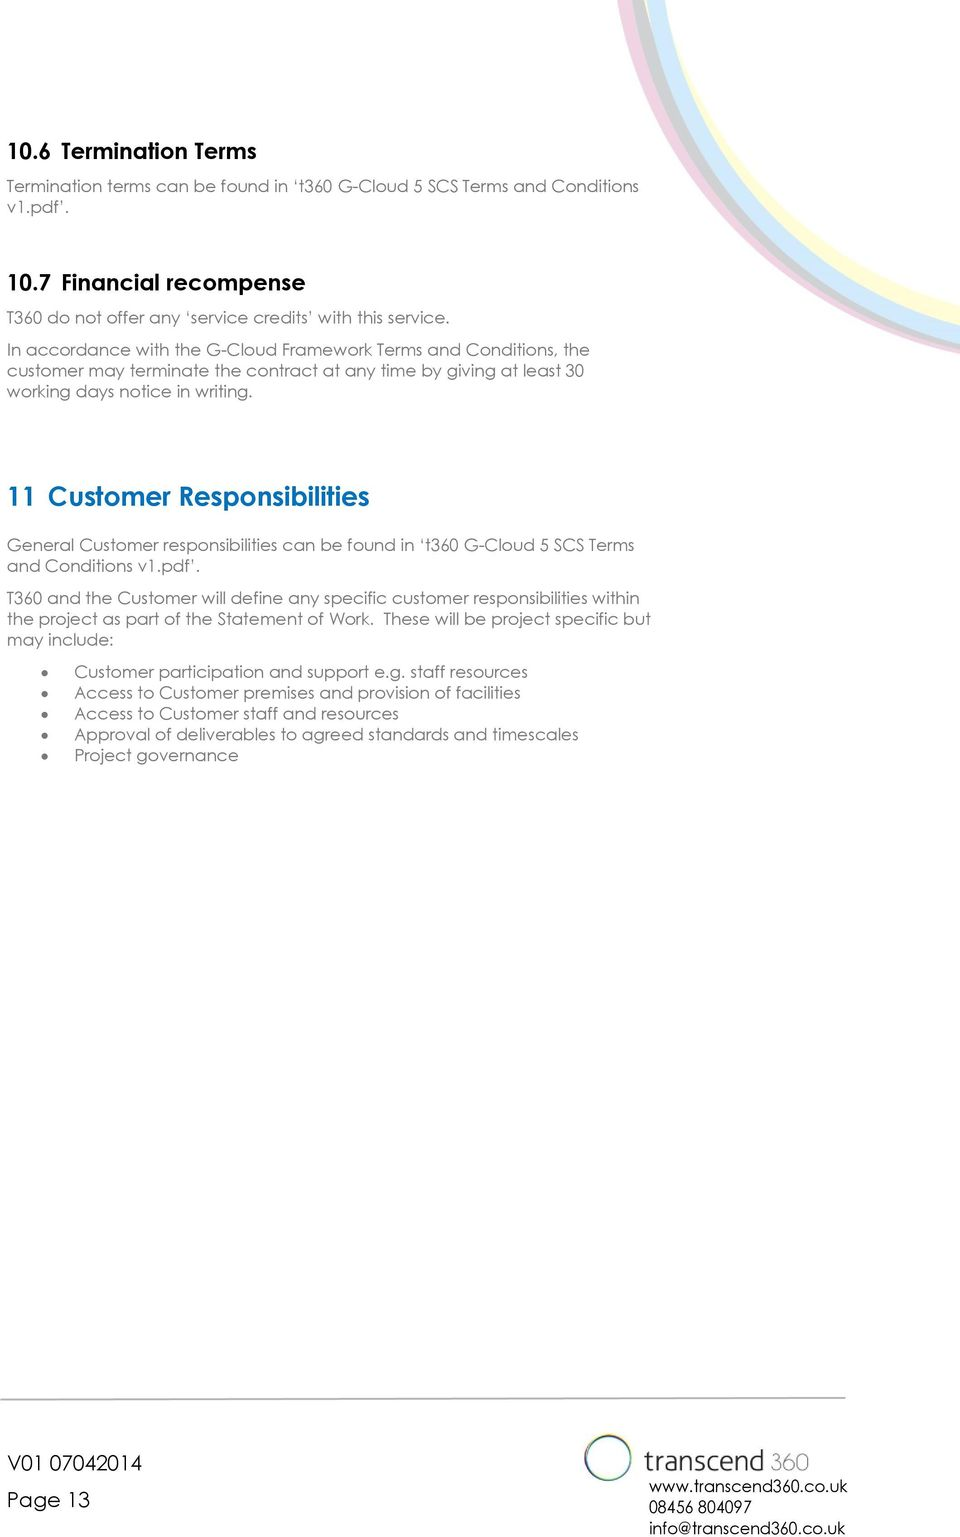 11 Customer Responsibilities General Customer responsibilities can be found in t360 G-Cloud 5 SCS Terms and Conditions v1.pdf.